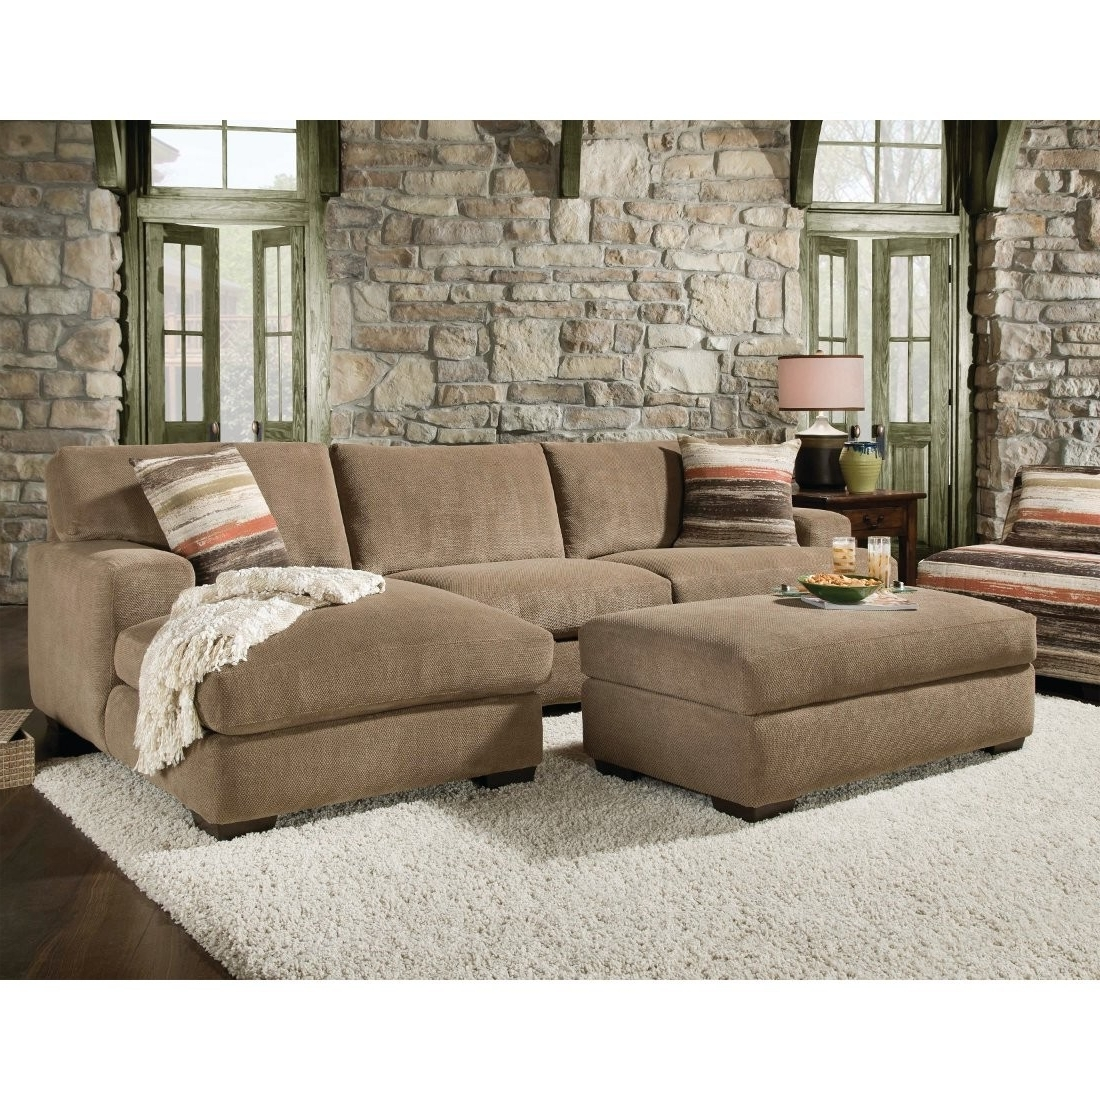 Recent Double Chaise Couches Throughout Beautiful Sectional Sofa With Chaise And Ottoman Pictures (View 14 of 15)